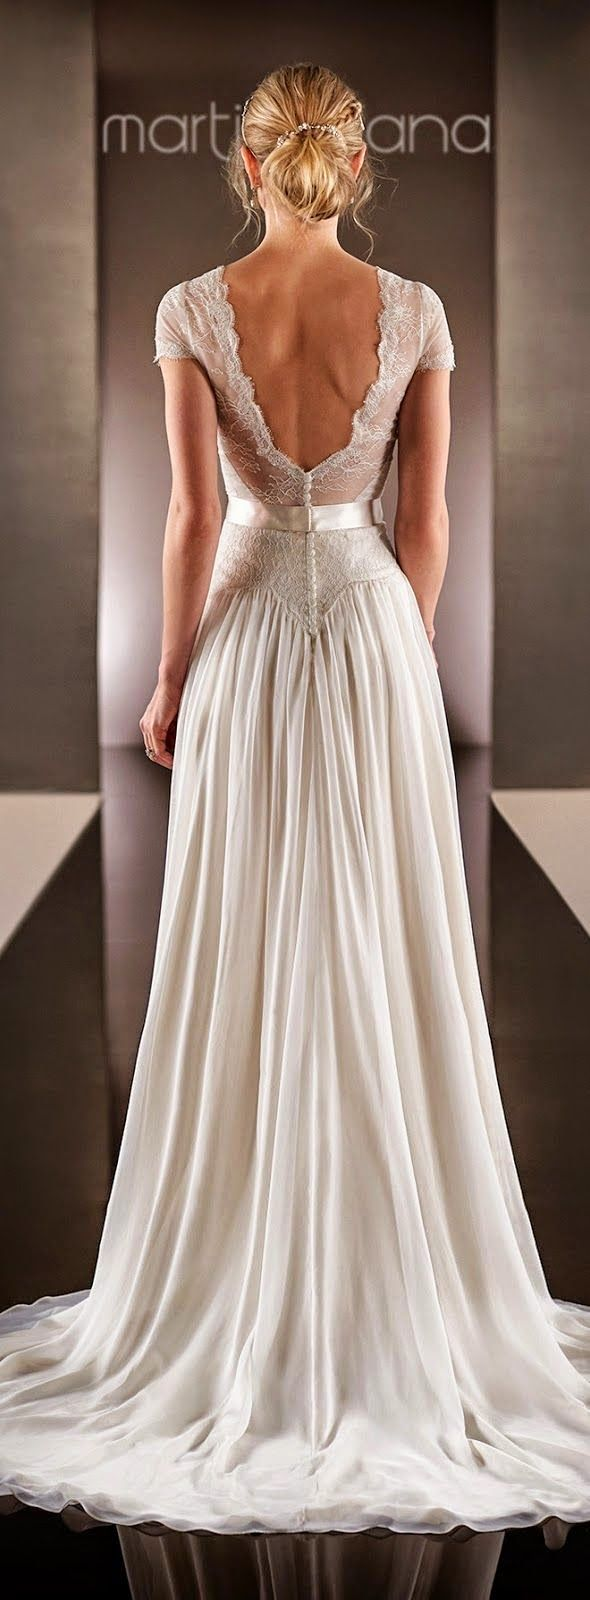 Martina Liana 2015 wedding dress is a must have with the floor lenght modern aline effect with small details and low back it is perfect for every bride